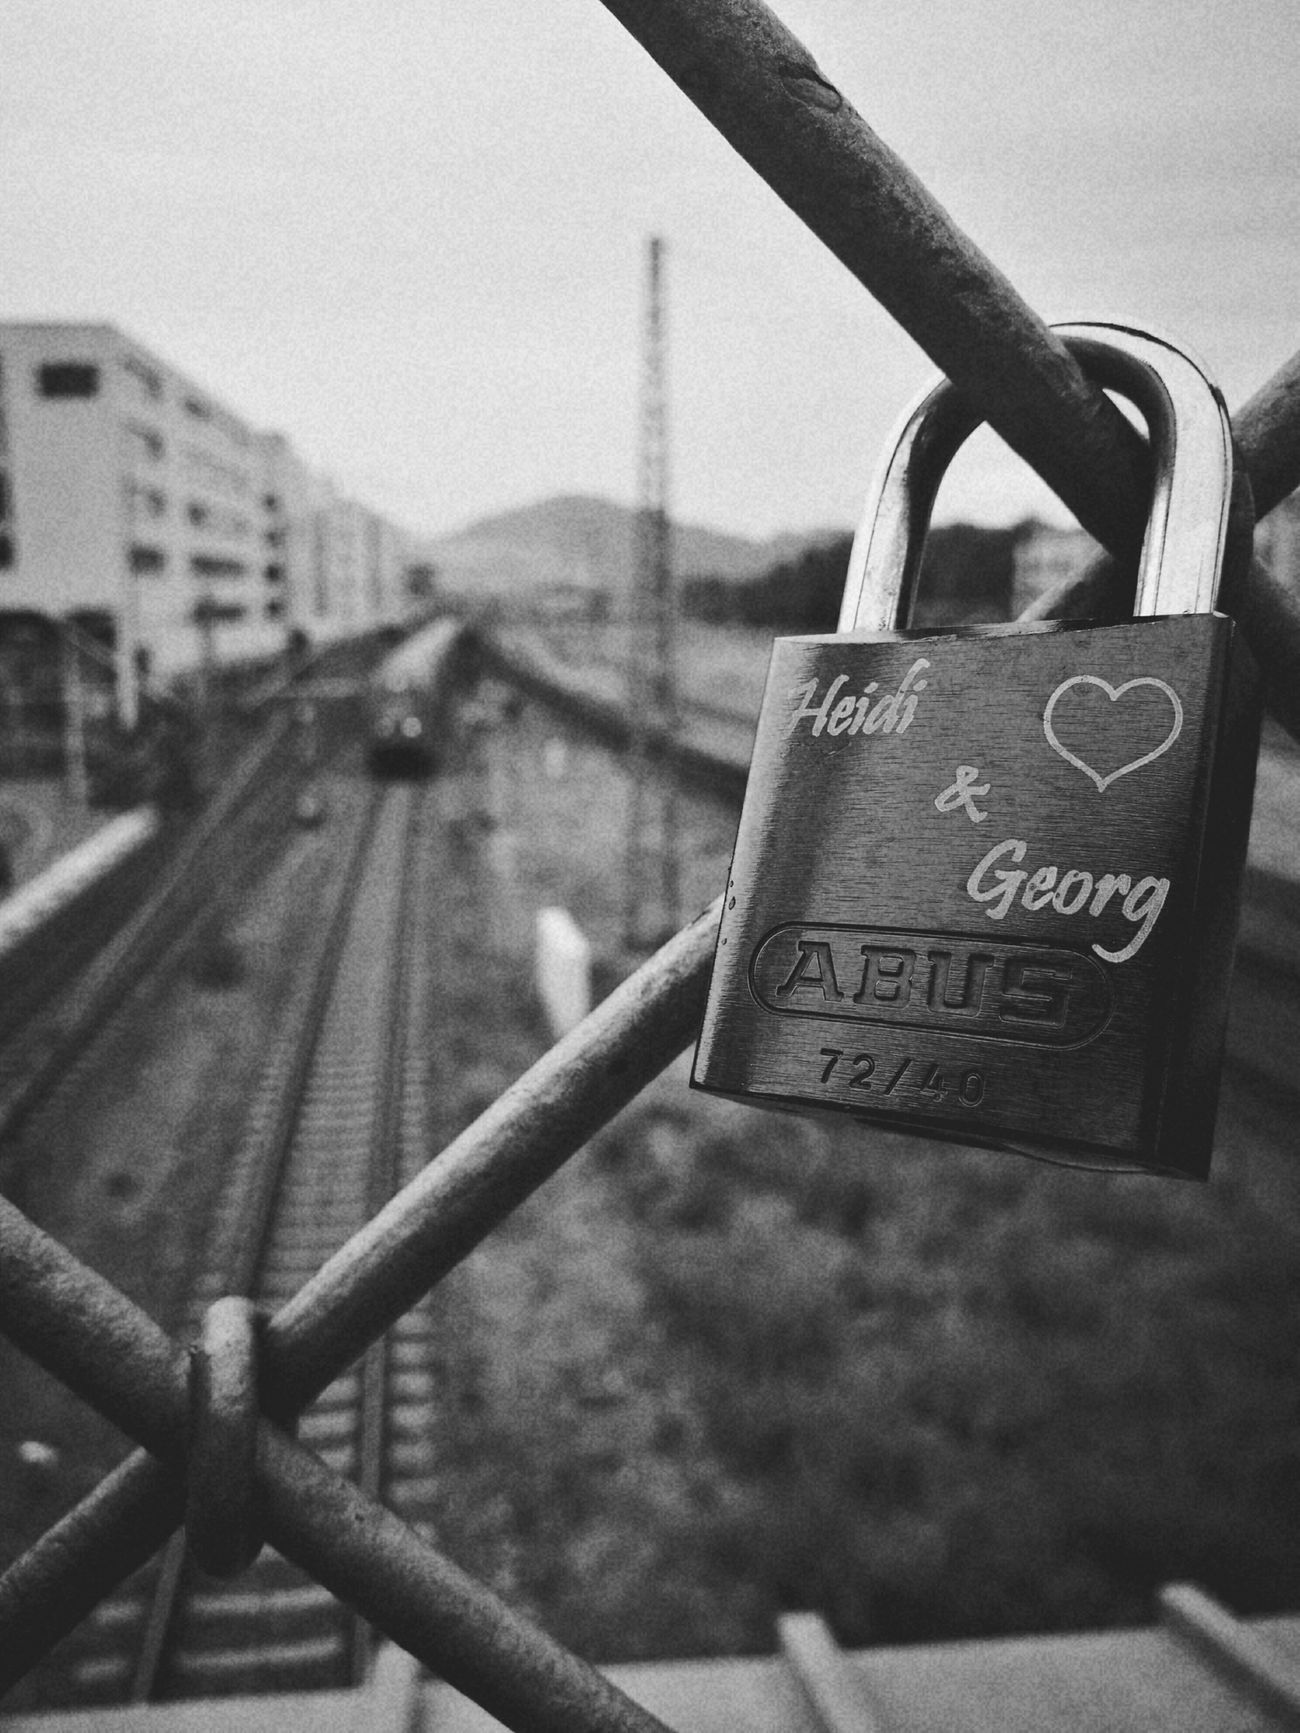 My Year My View Close-up Outdoors No People Day Text Lock Sky Love Is In The Air Promise Bridge Train Station Foreign City Freiburg